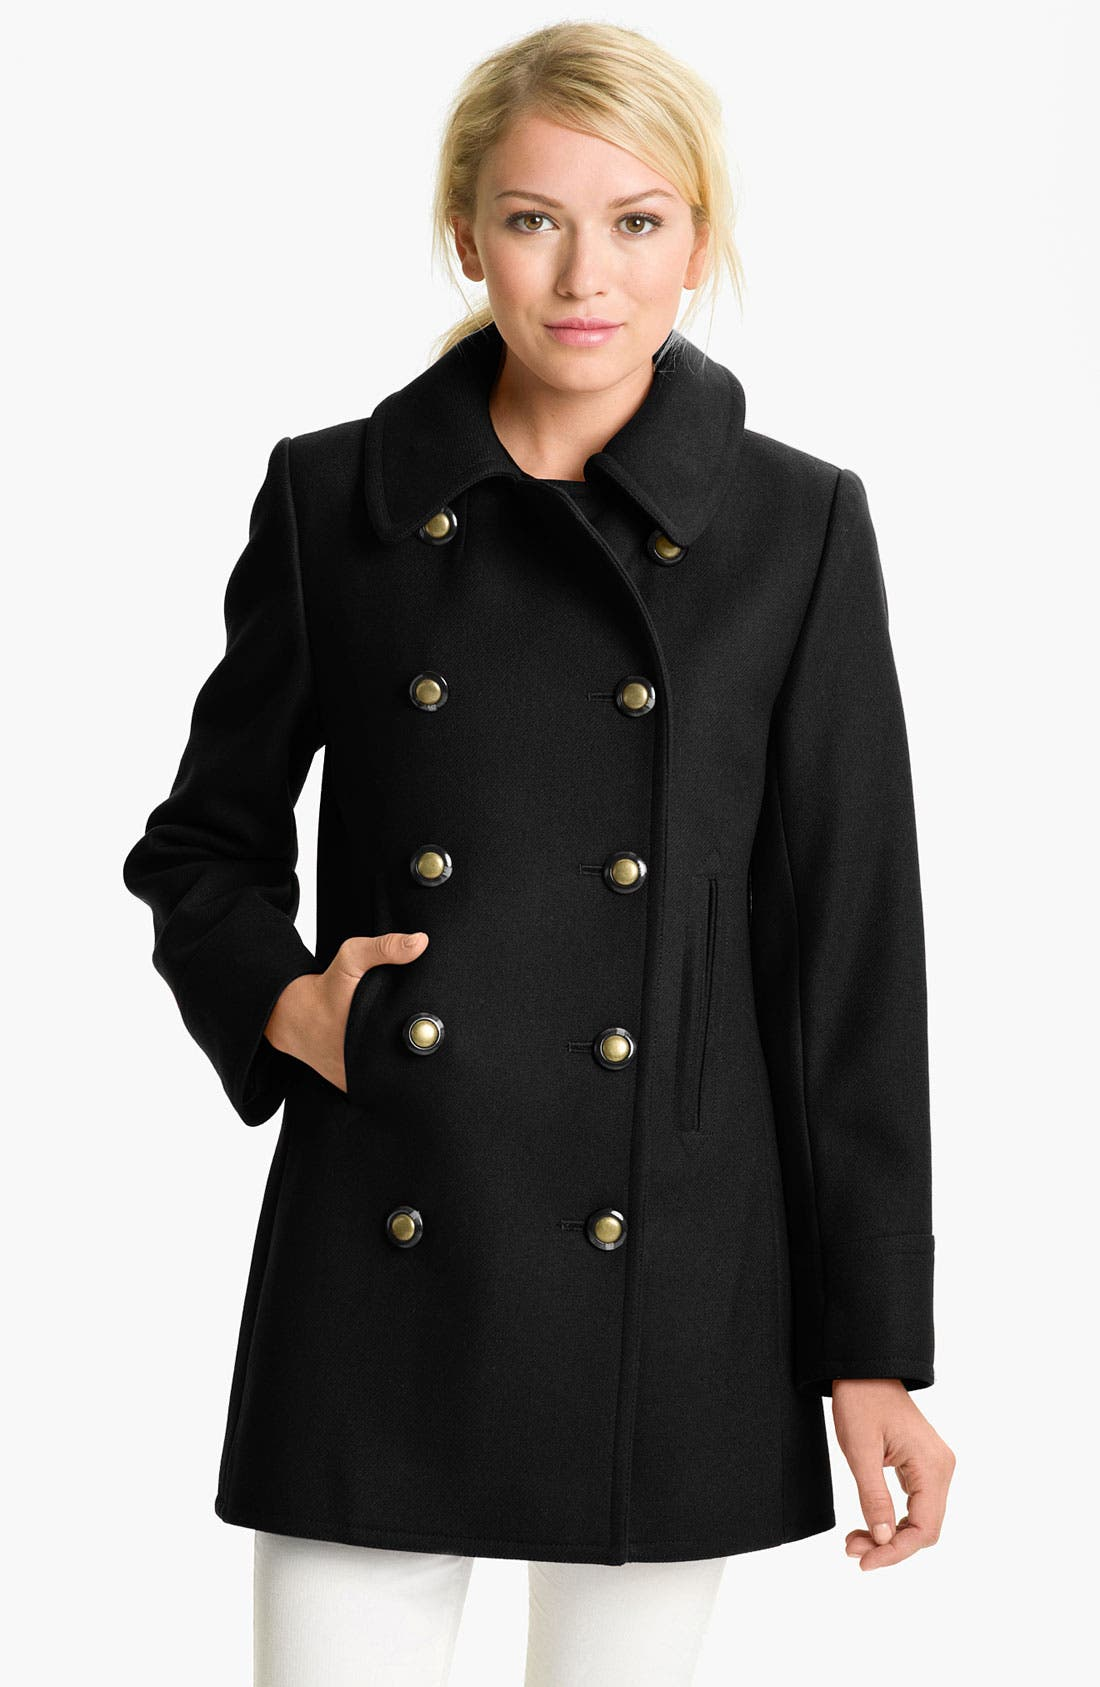 Main Image - Kristen Blake Double Breasted Peacoat